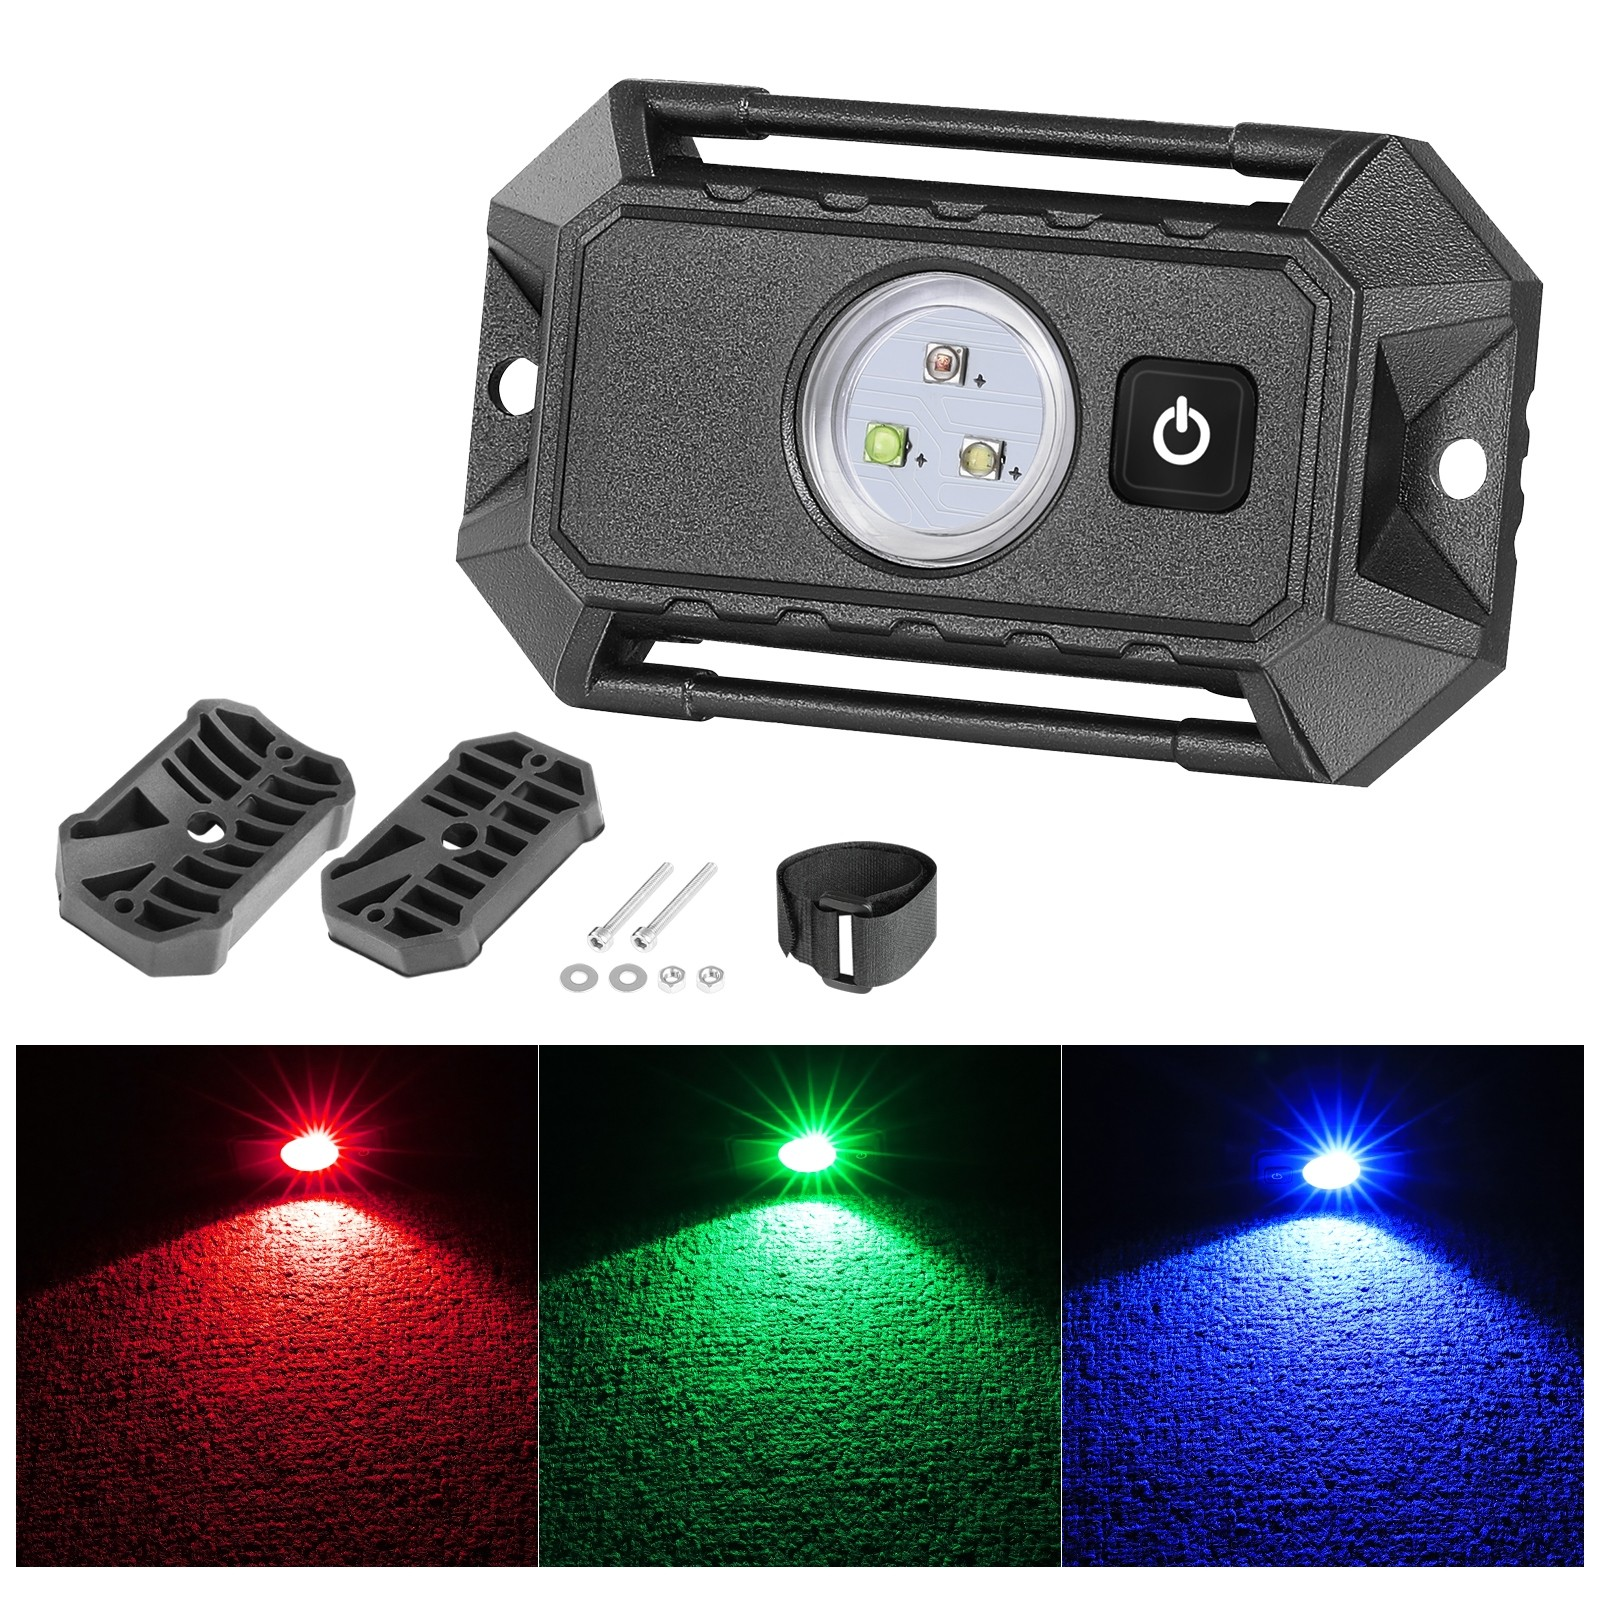 LED Dome light W/ Switch